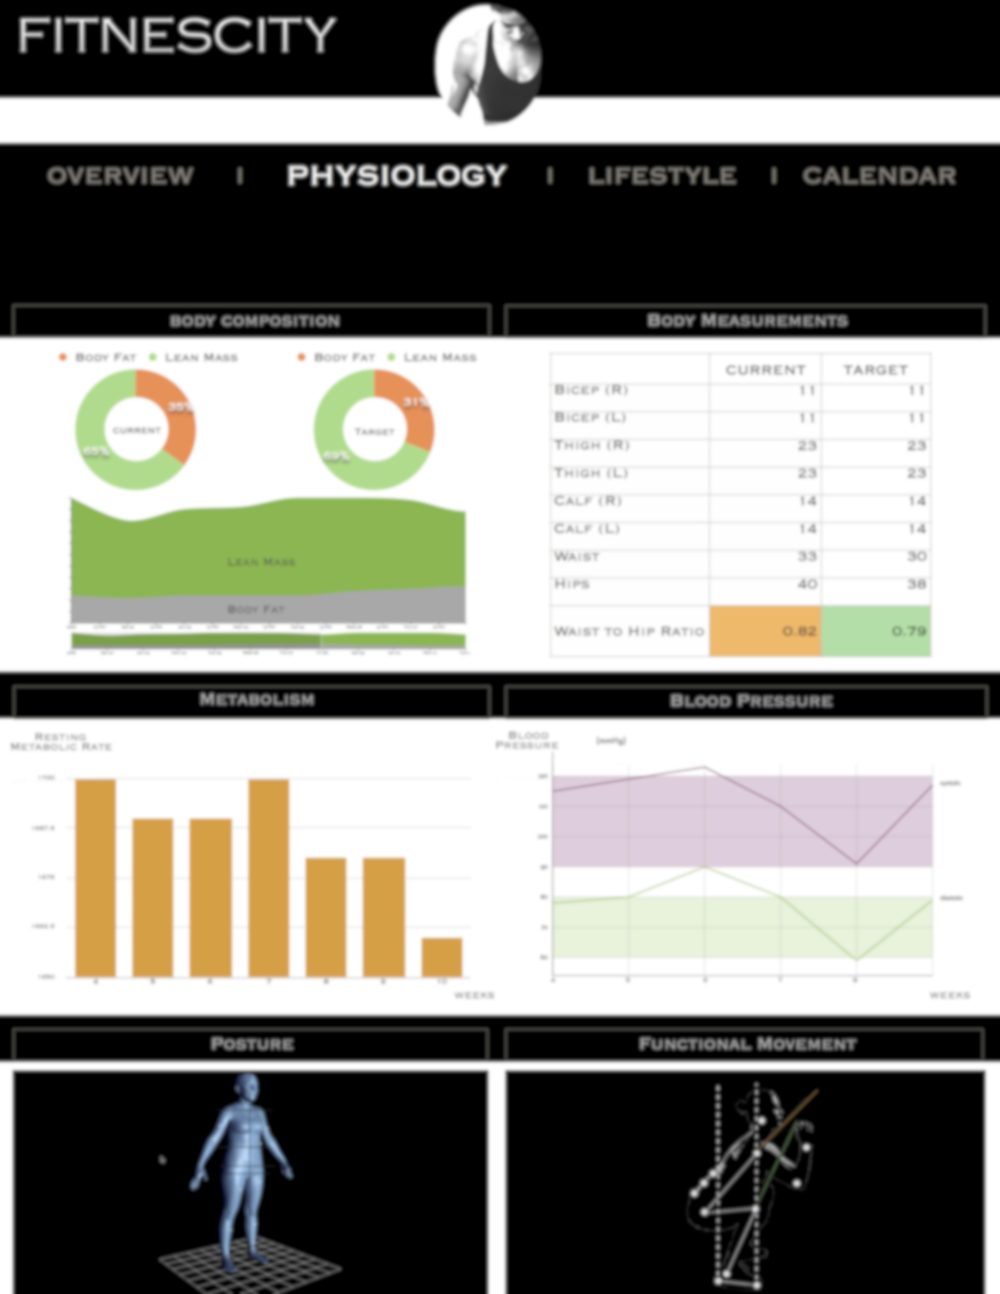 Results by Fitnescity